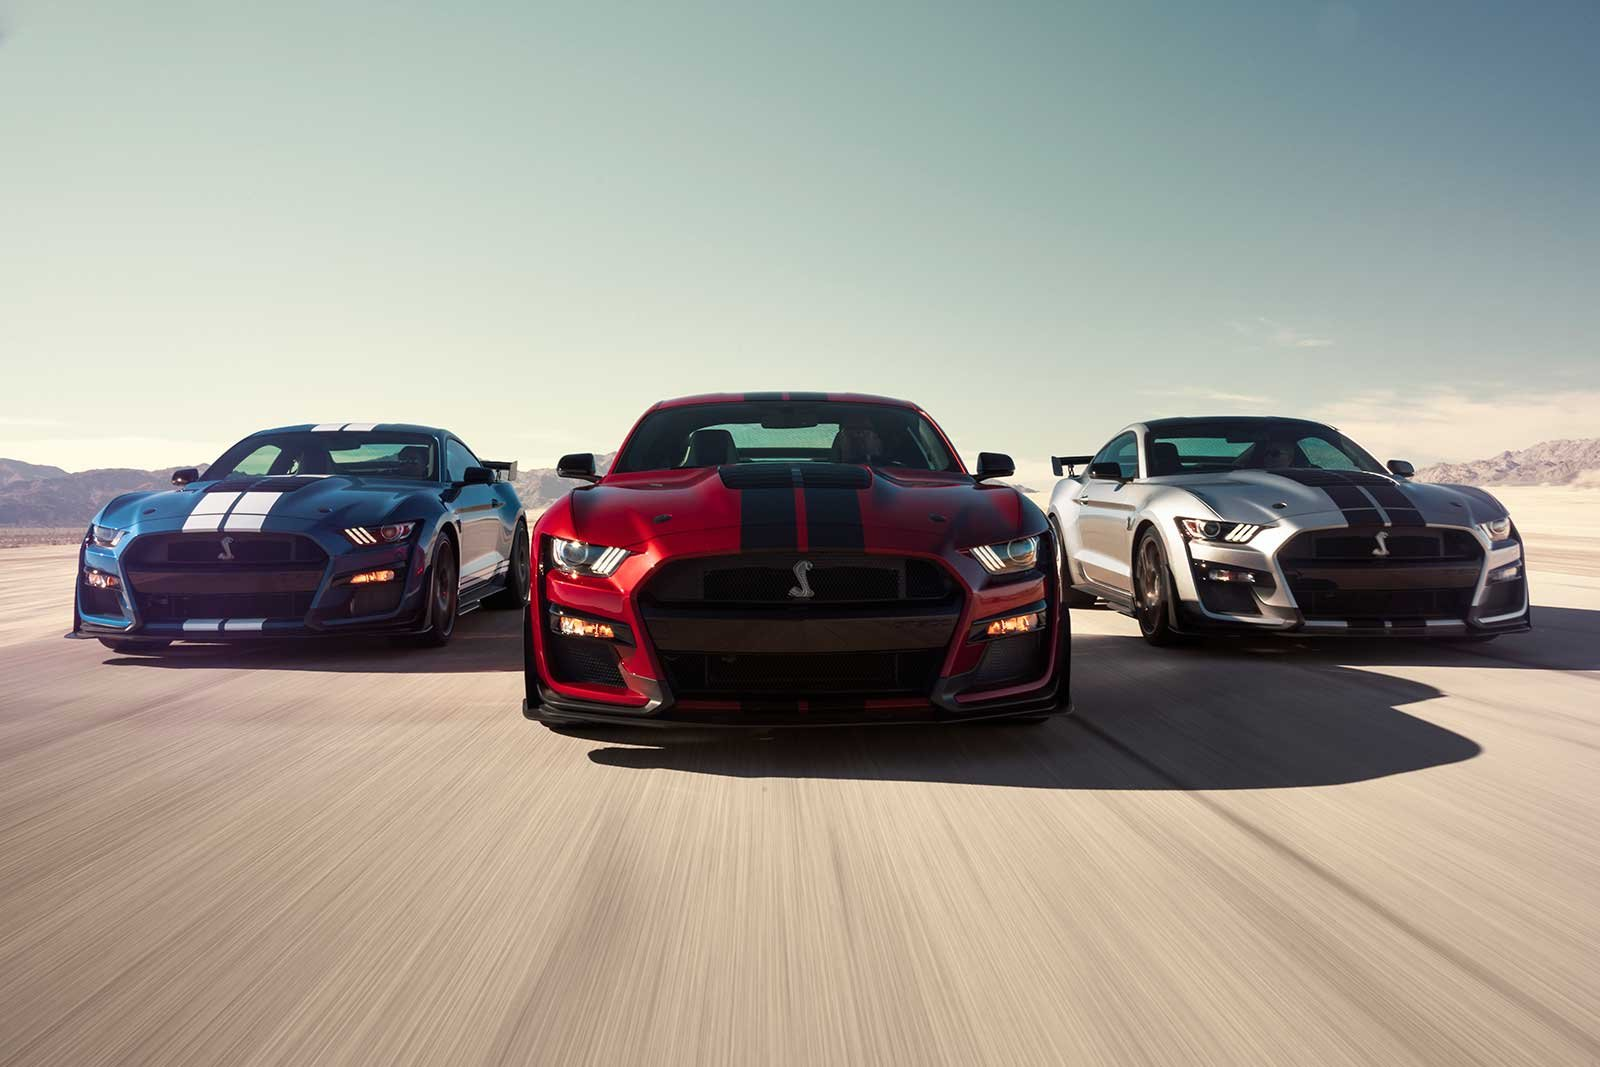 Watch: Ford Designer Talks About Drawing the Sketch that Became the GT500